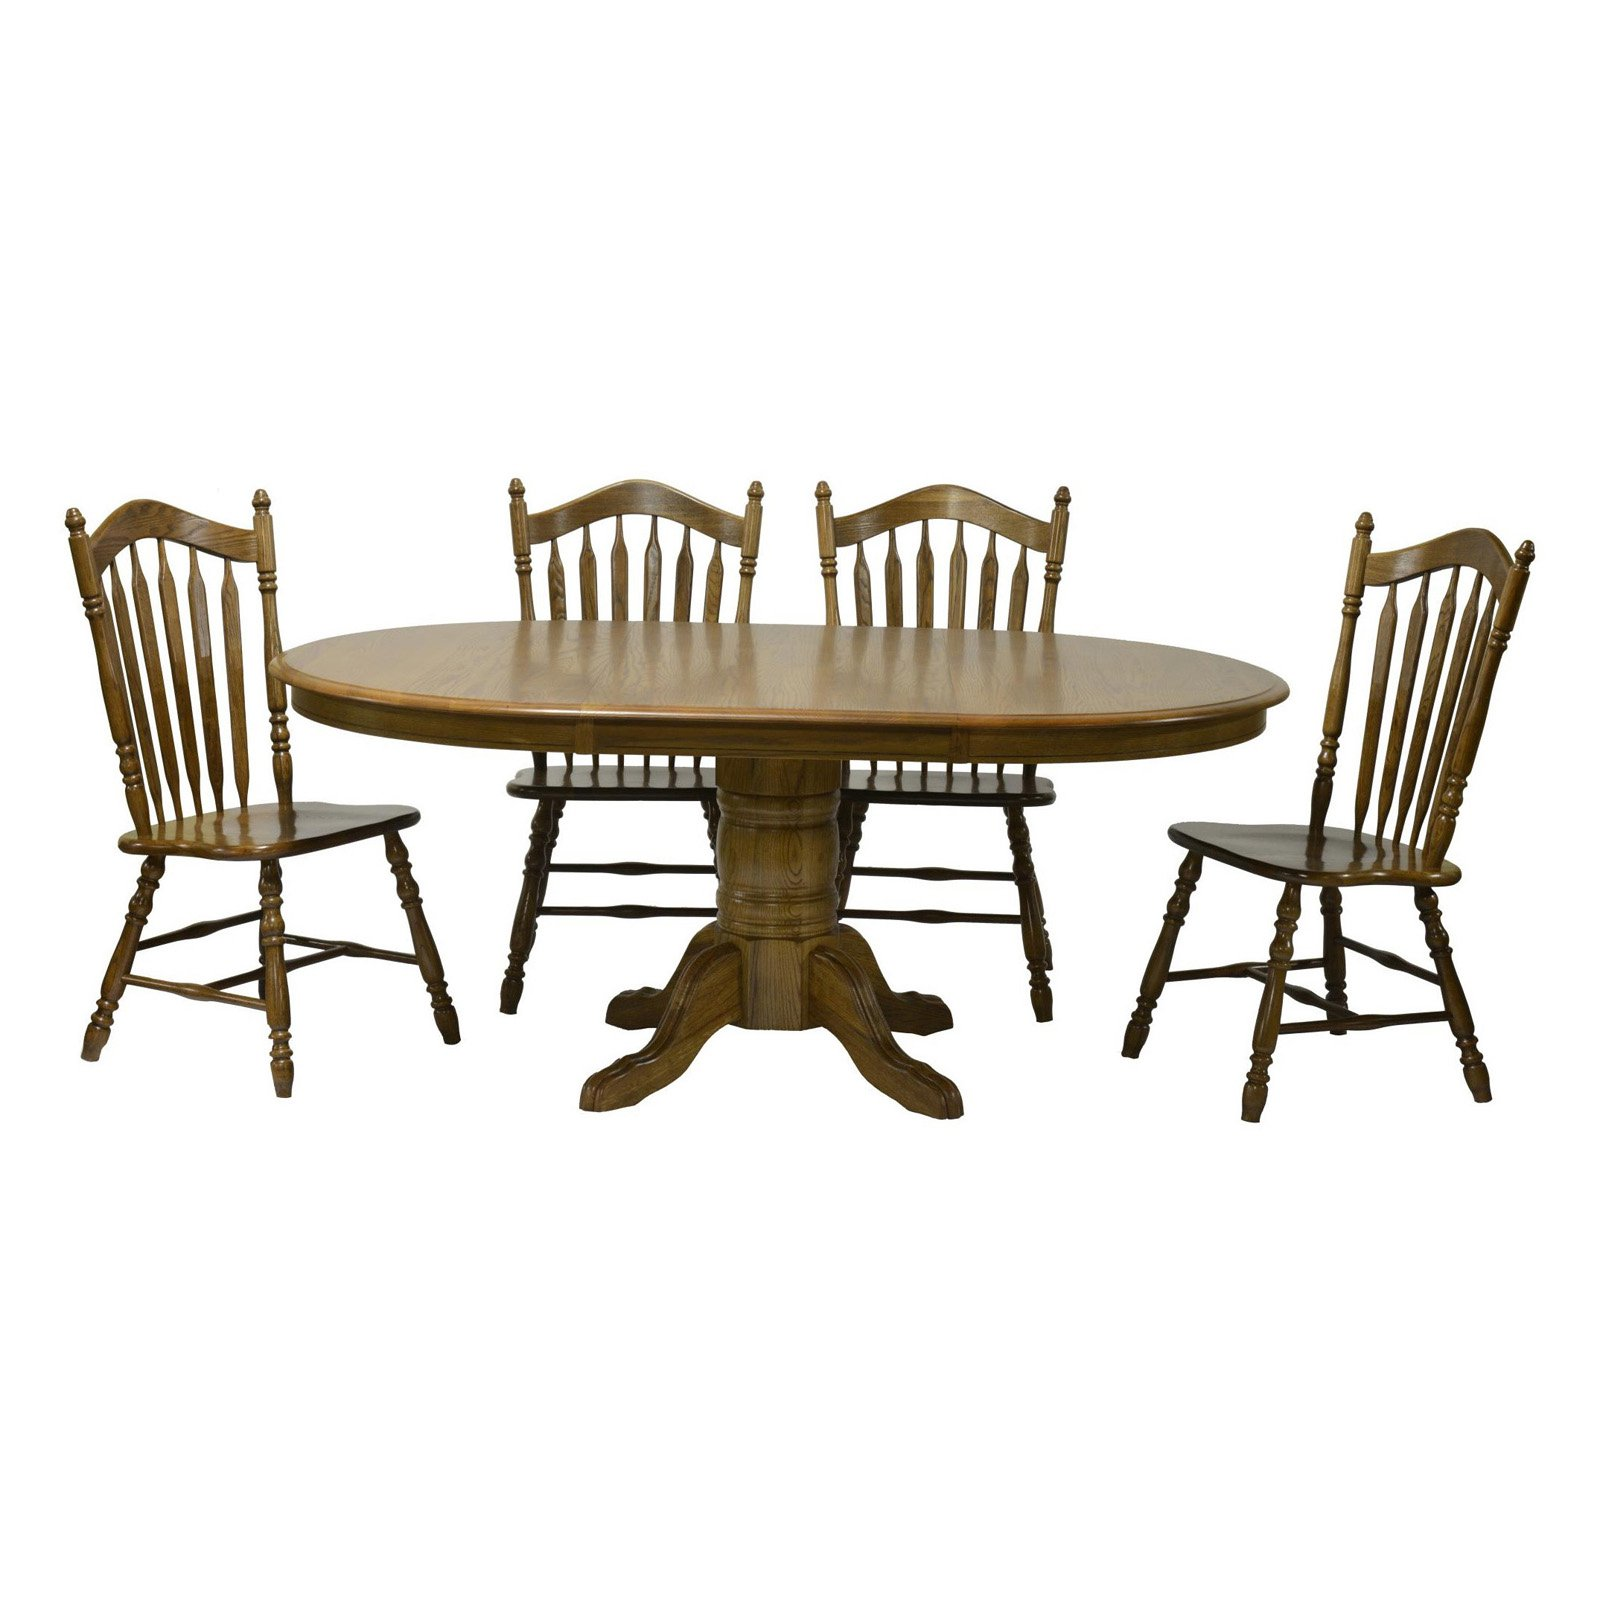 Chelsea Home Sourwood Pedestal Dining Table by Chelsea Home Furniture LLC.